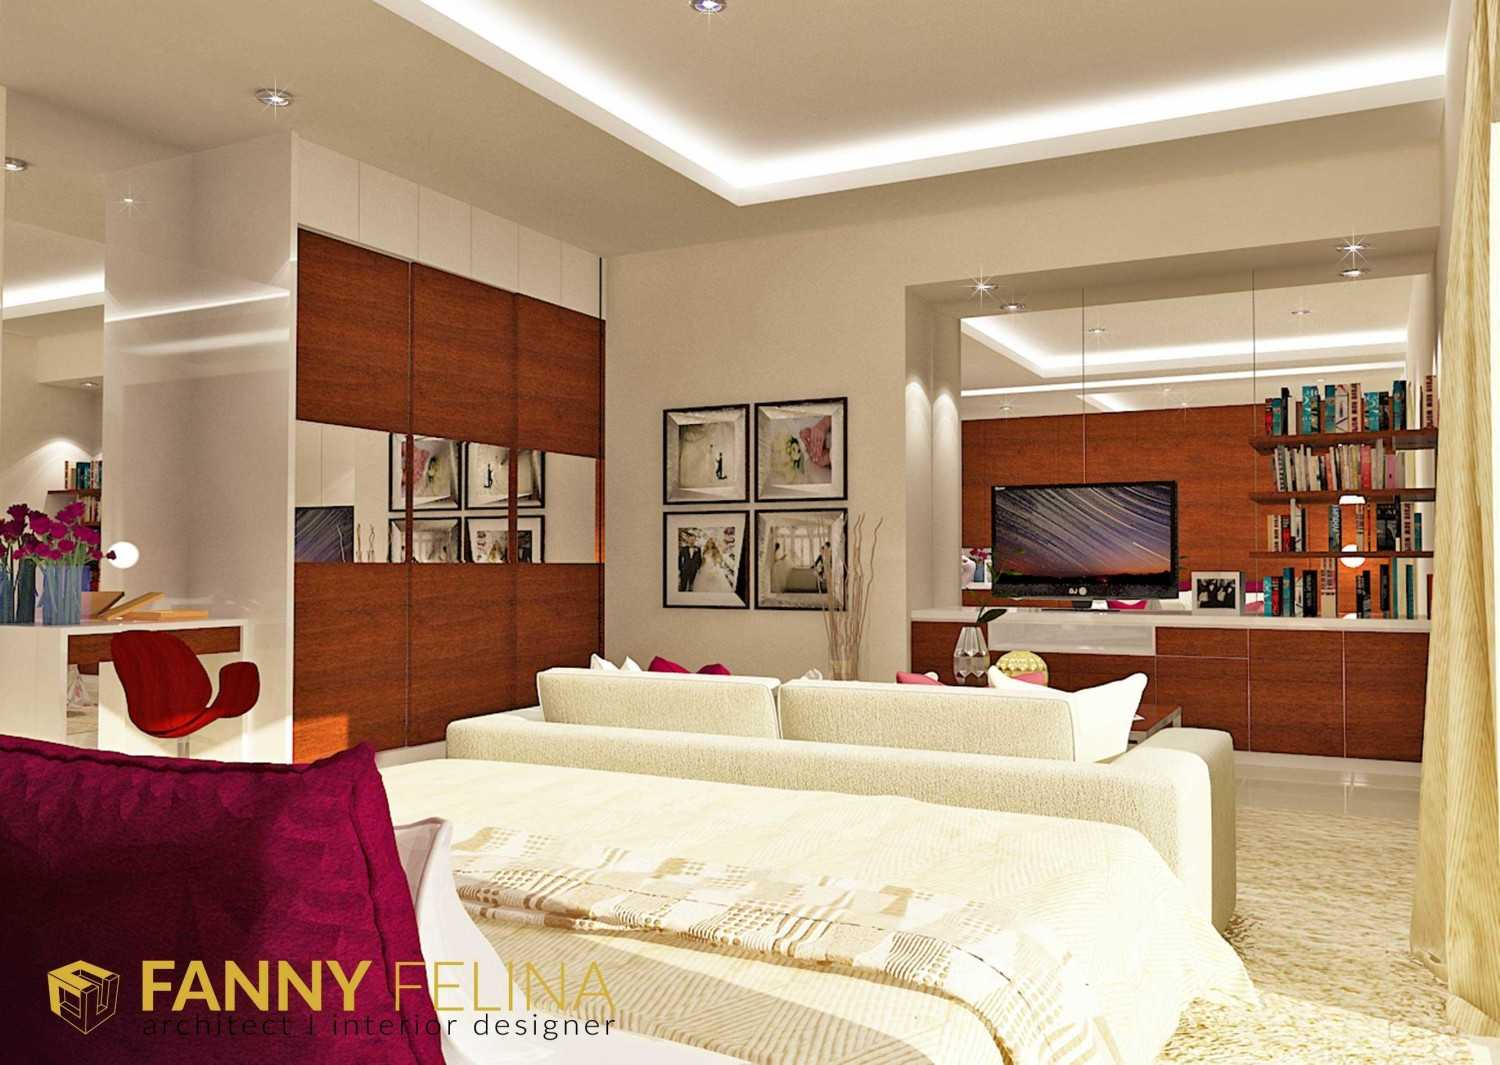 Fanny Felina Architecture & Interior Design Hercules House Surabaya, Surabaya City, East Java, Indonesia Surabaya, Surabaya City, East Java, Indonesia 01 Modern 34574